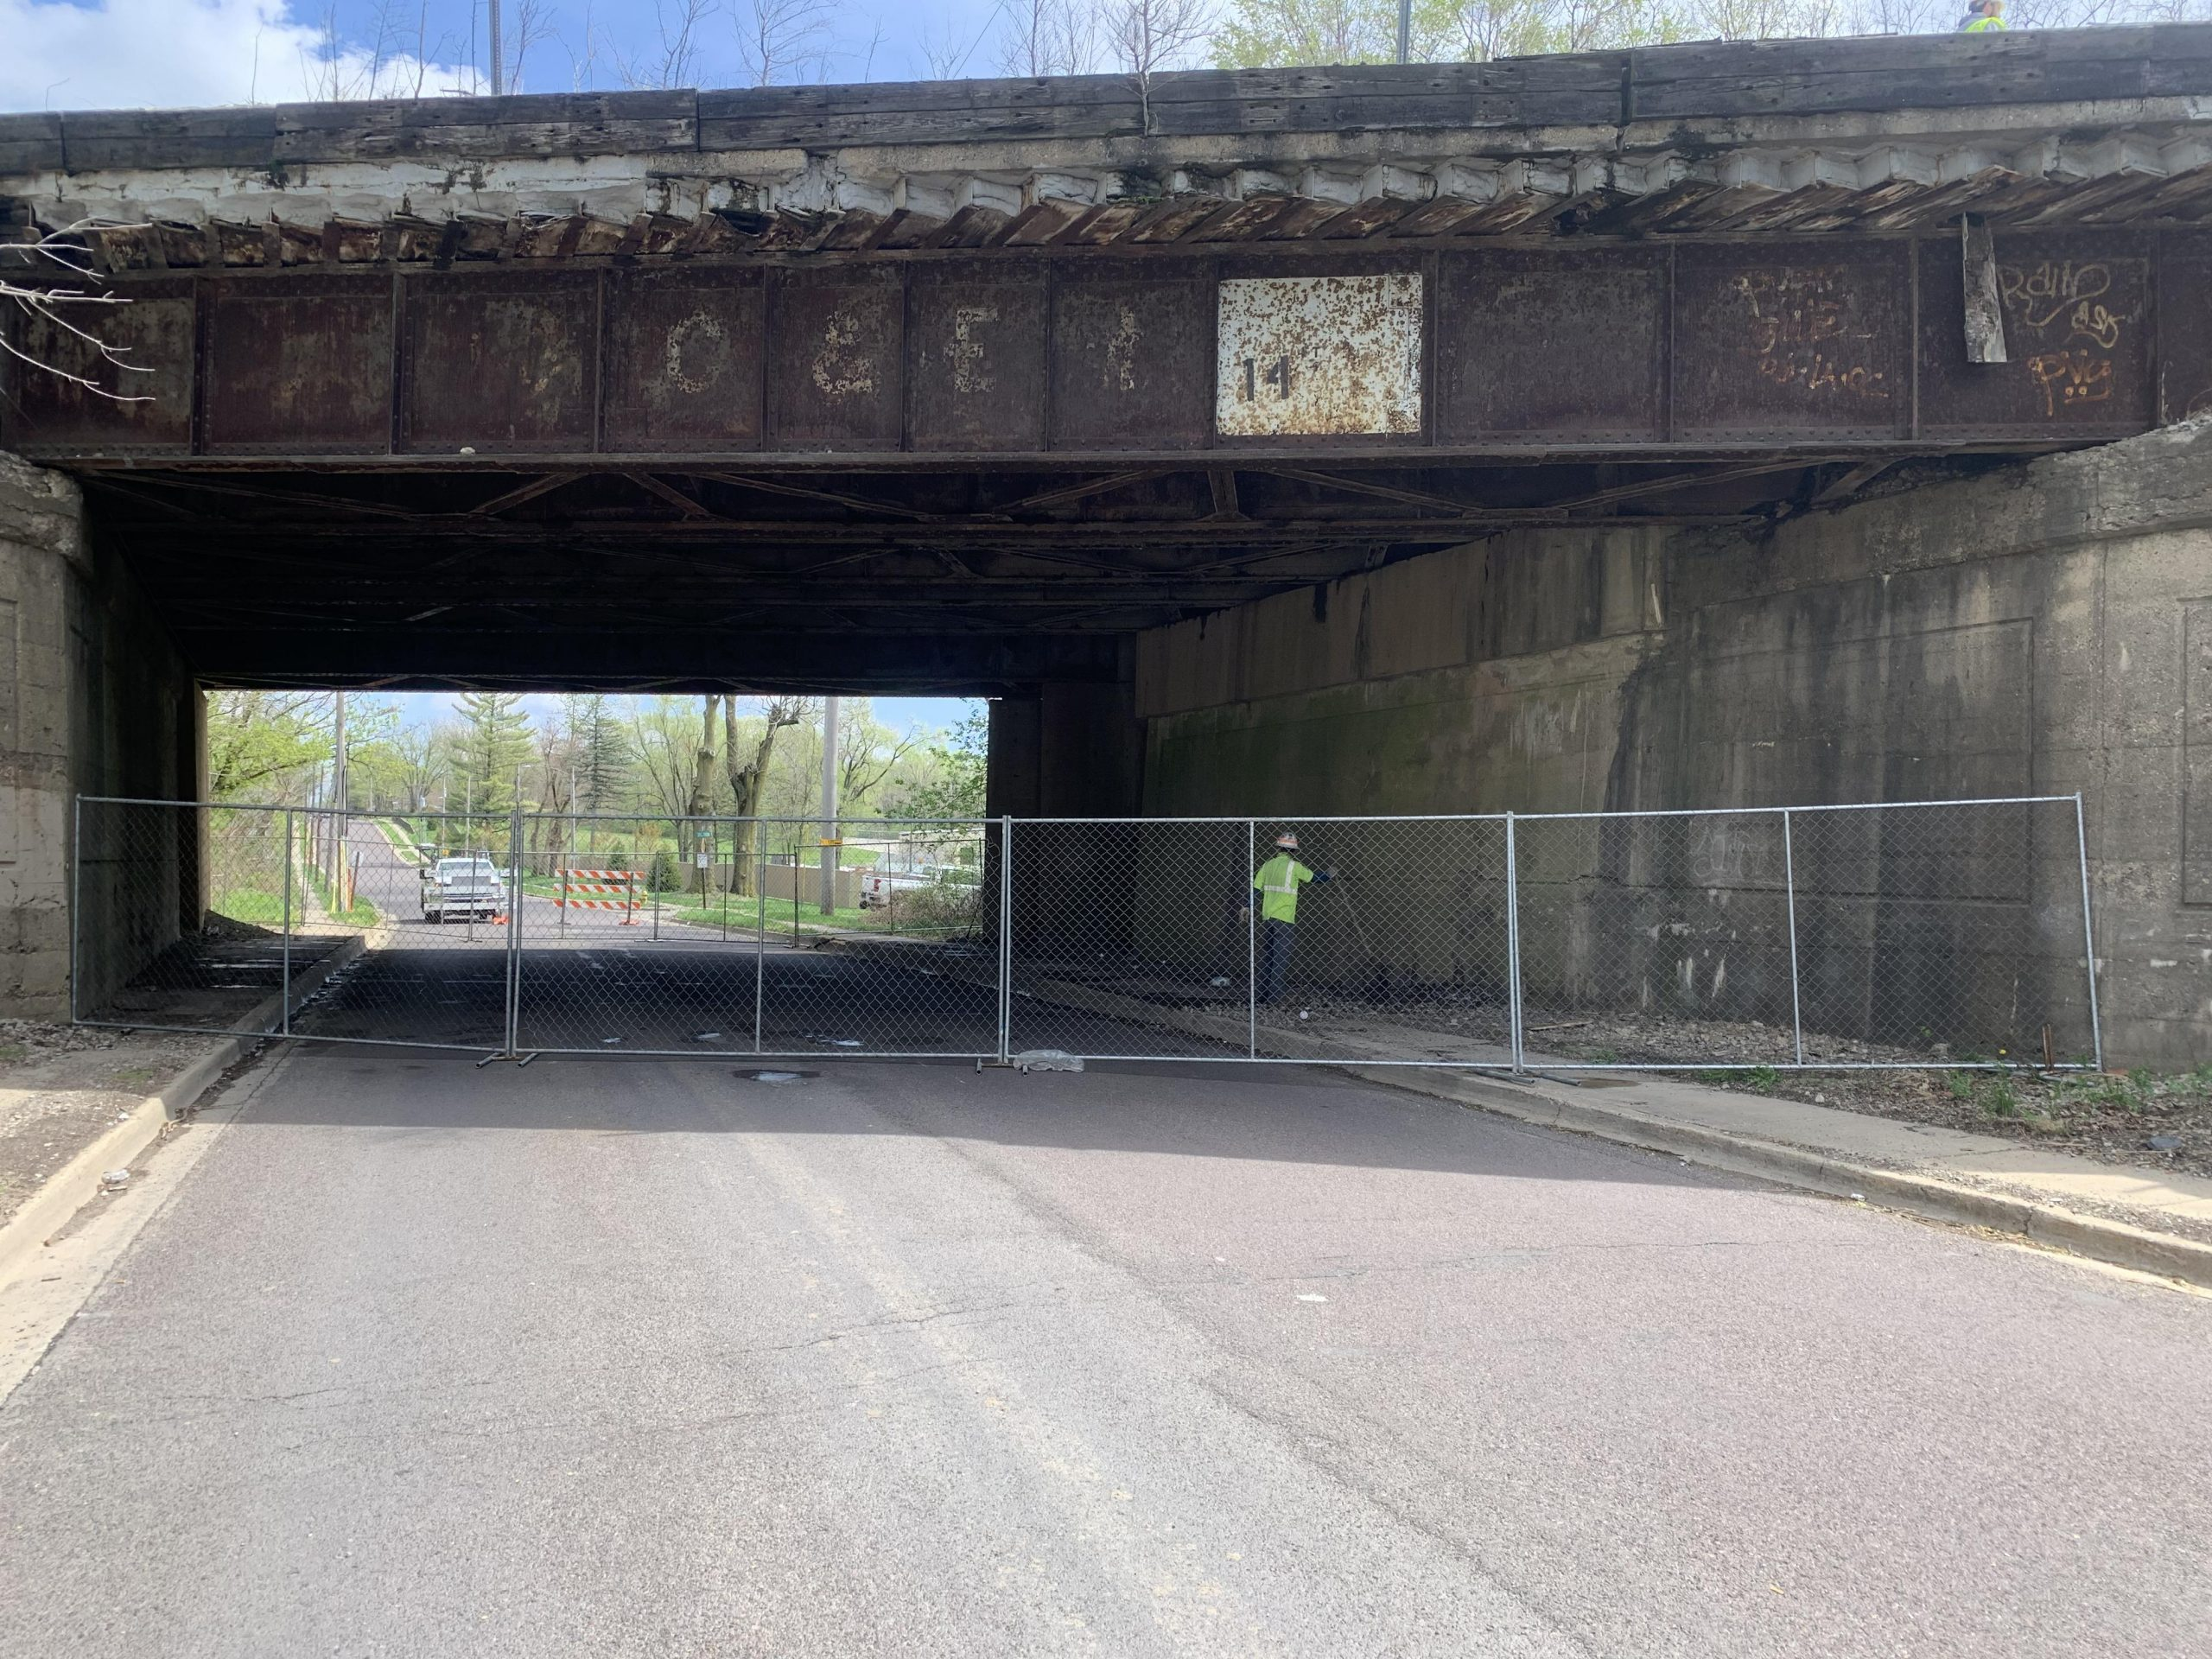 City Closes Seminary Street Viaduct